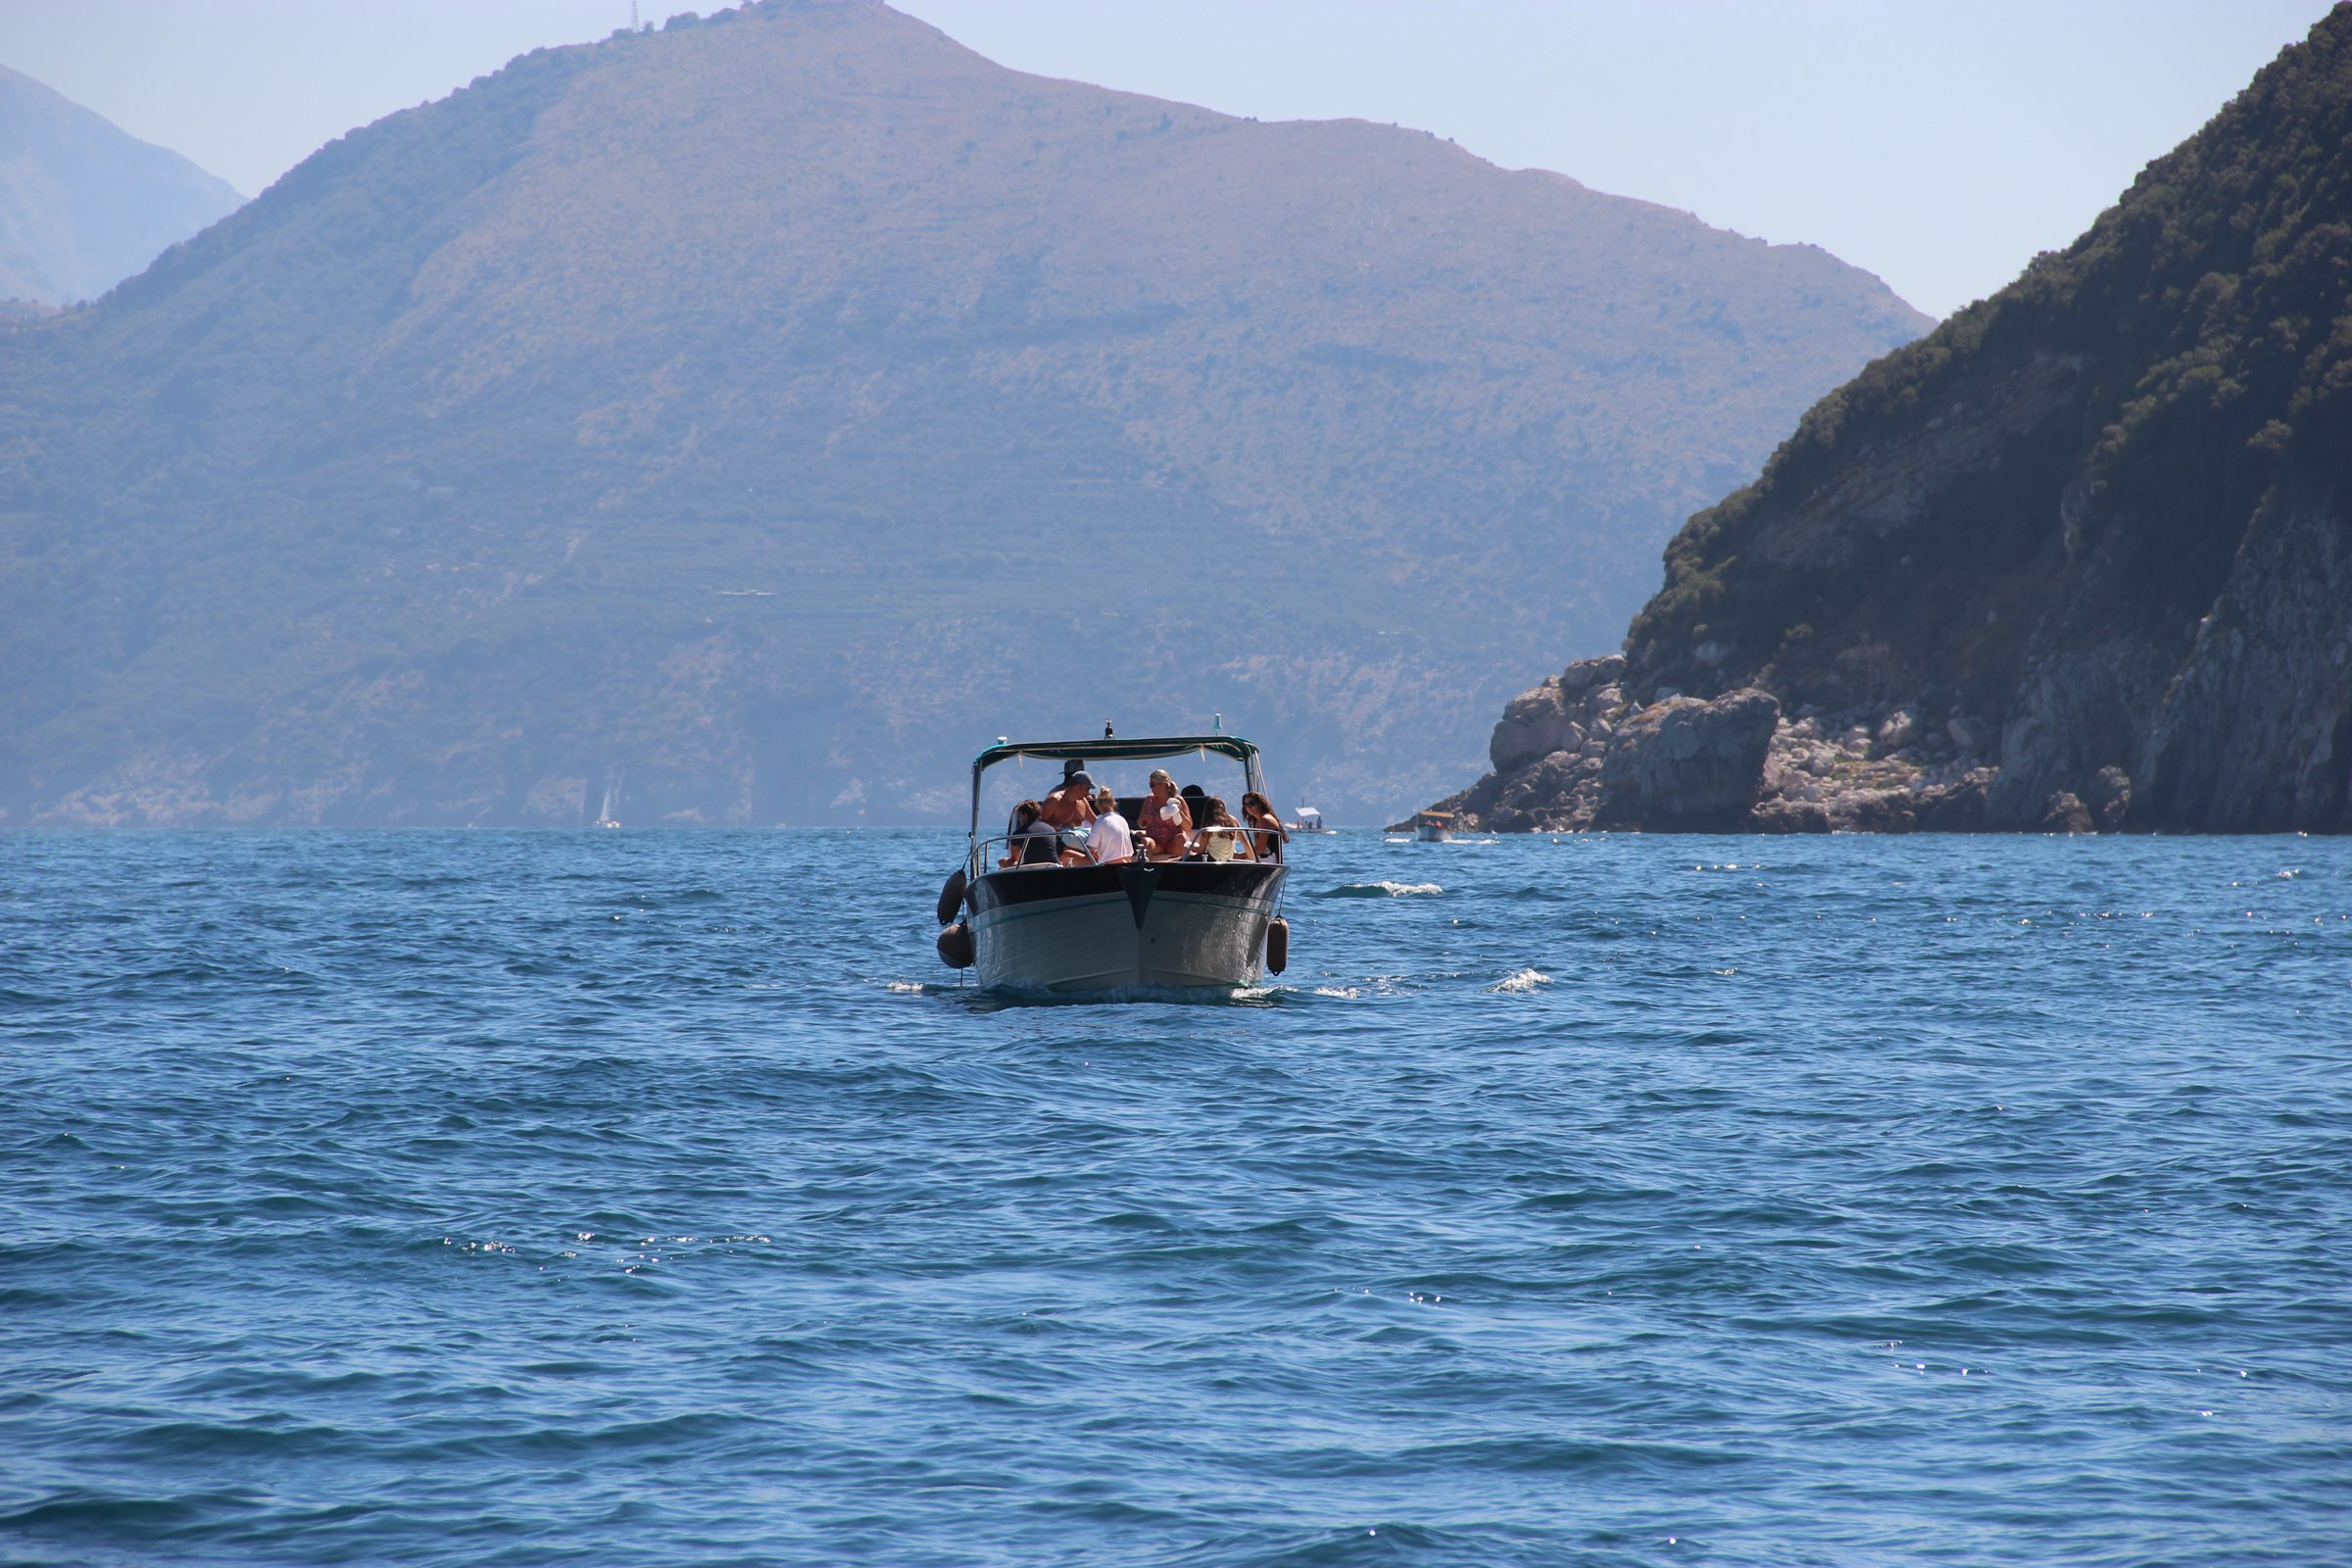 People On Boat In Water Near Mountains